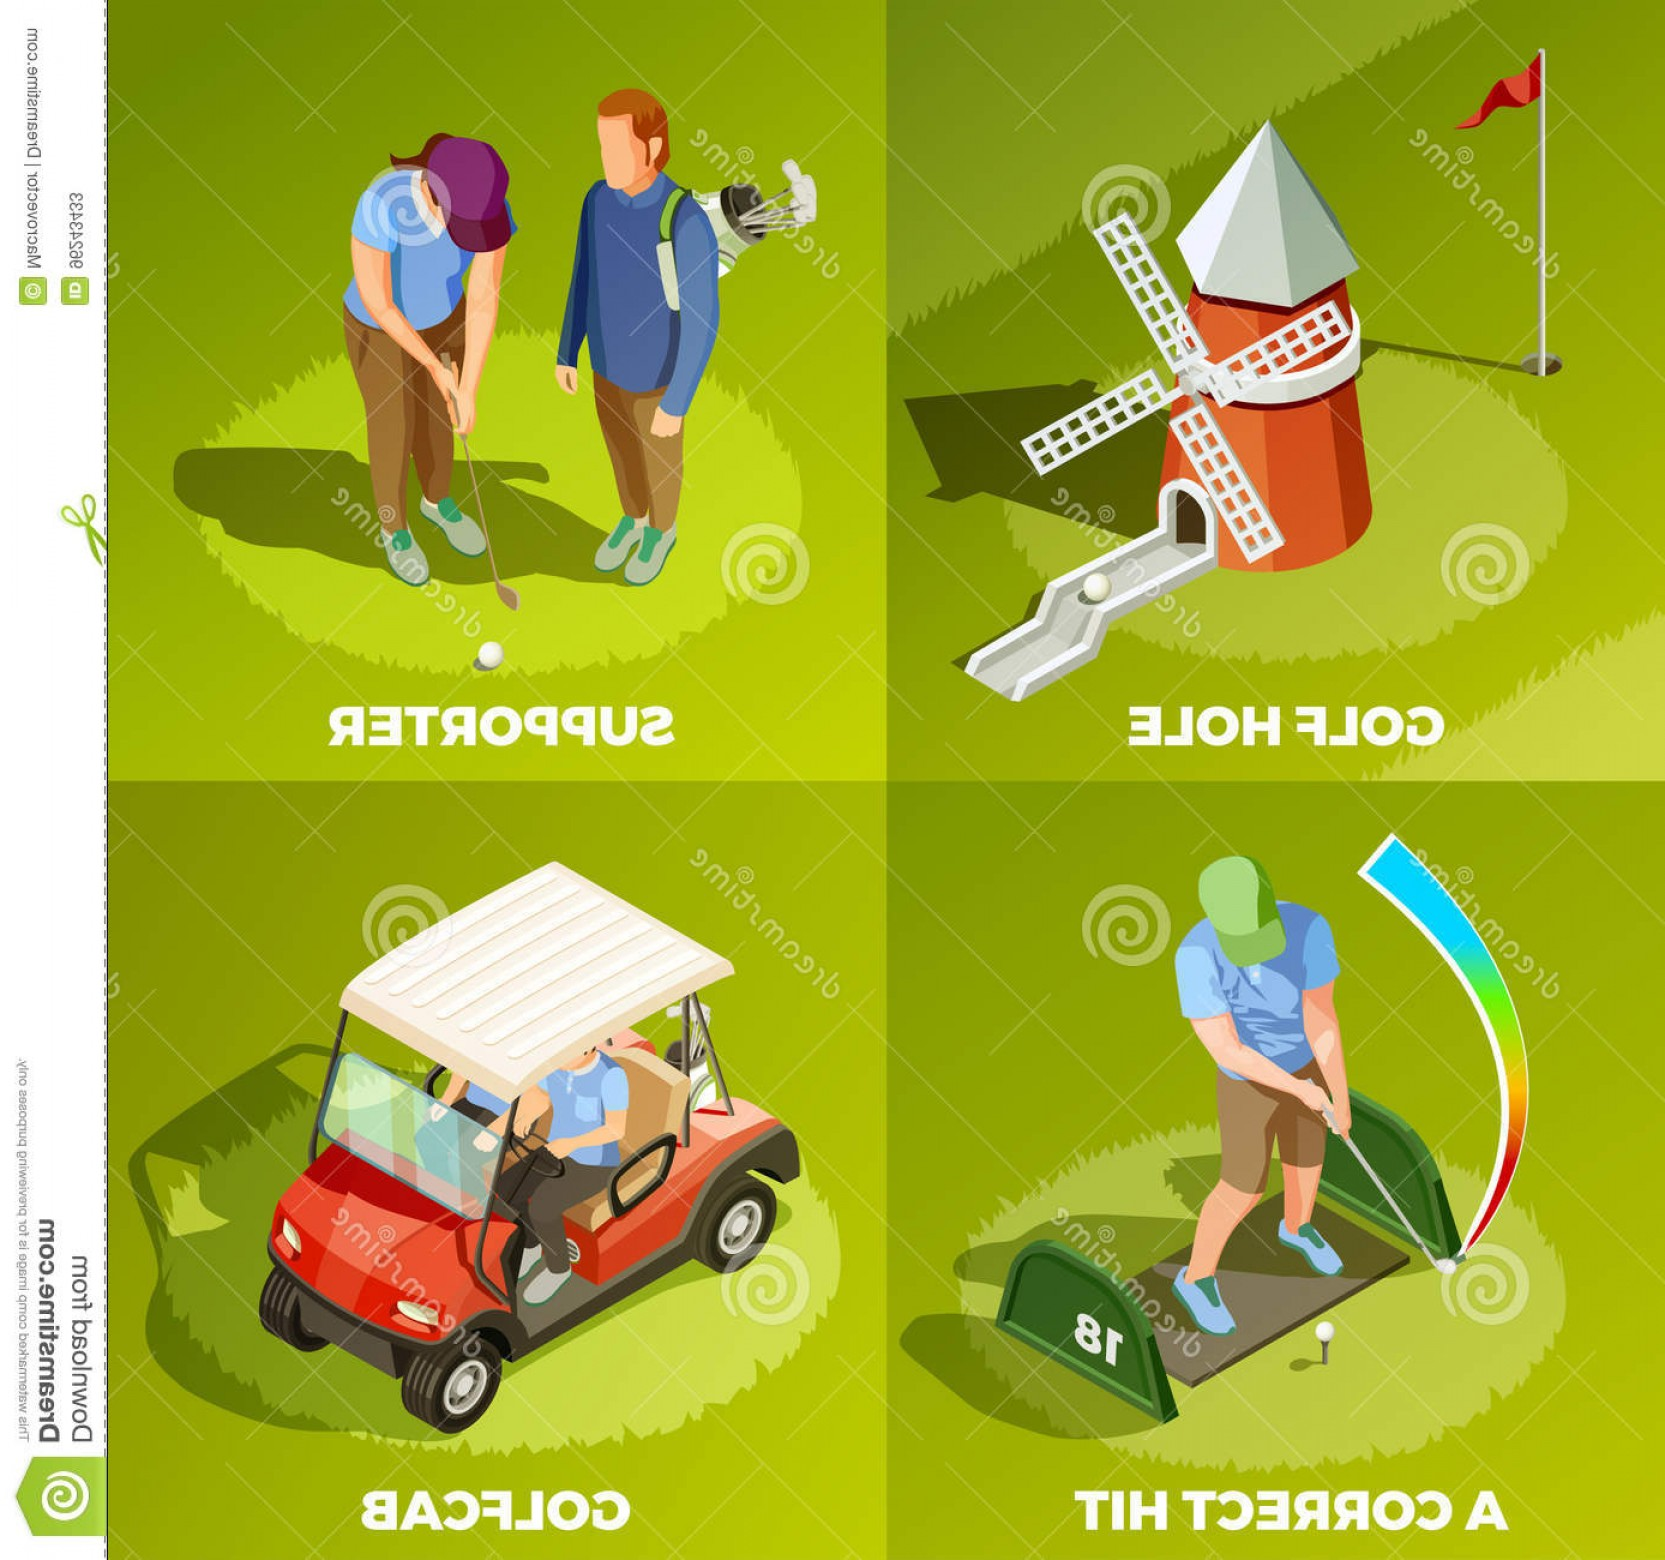 Vector Golf Simulator: Stock Illustration Golf Isometric Design Concept Correct Hit Cabriolet Supporter Hole Square Compositions Vector Illustration Image